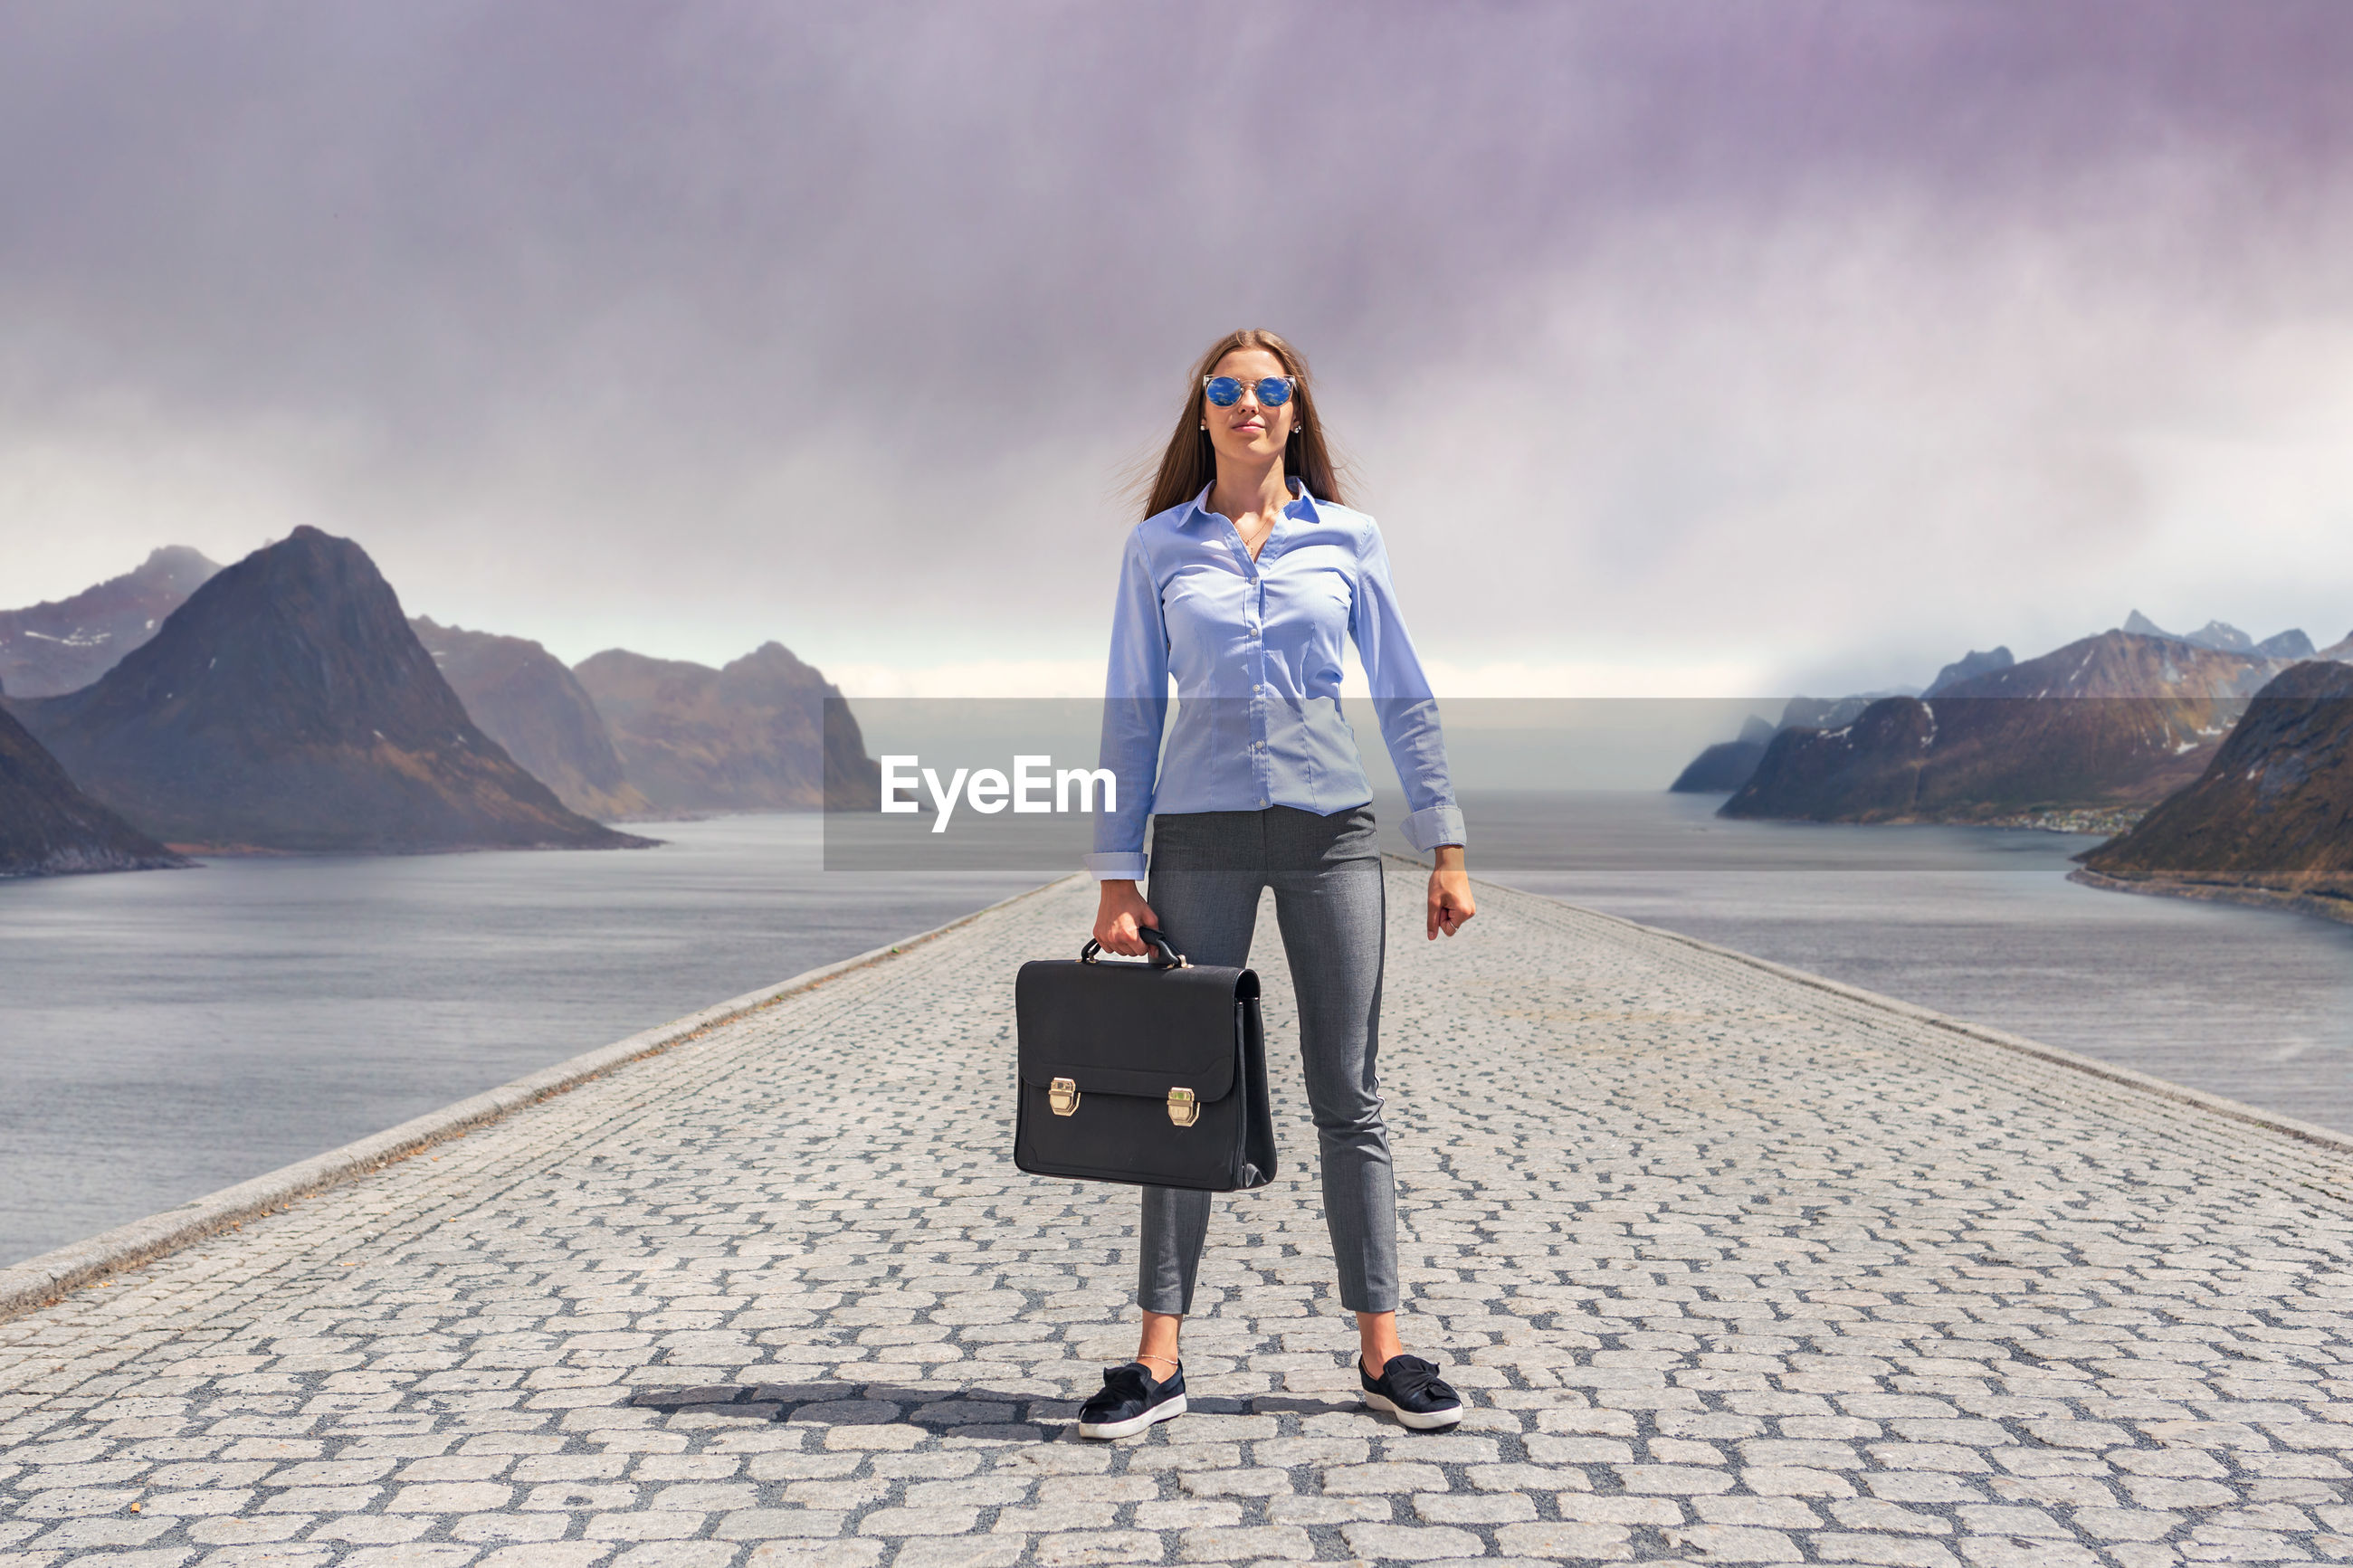 Portrait of young woman with briefcase standing on footpath amidst sea